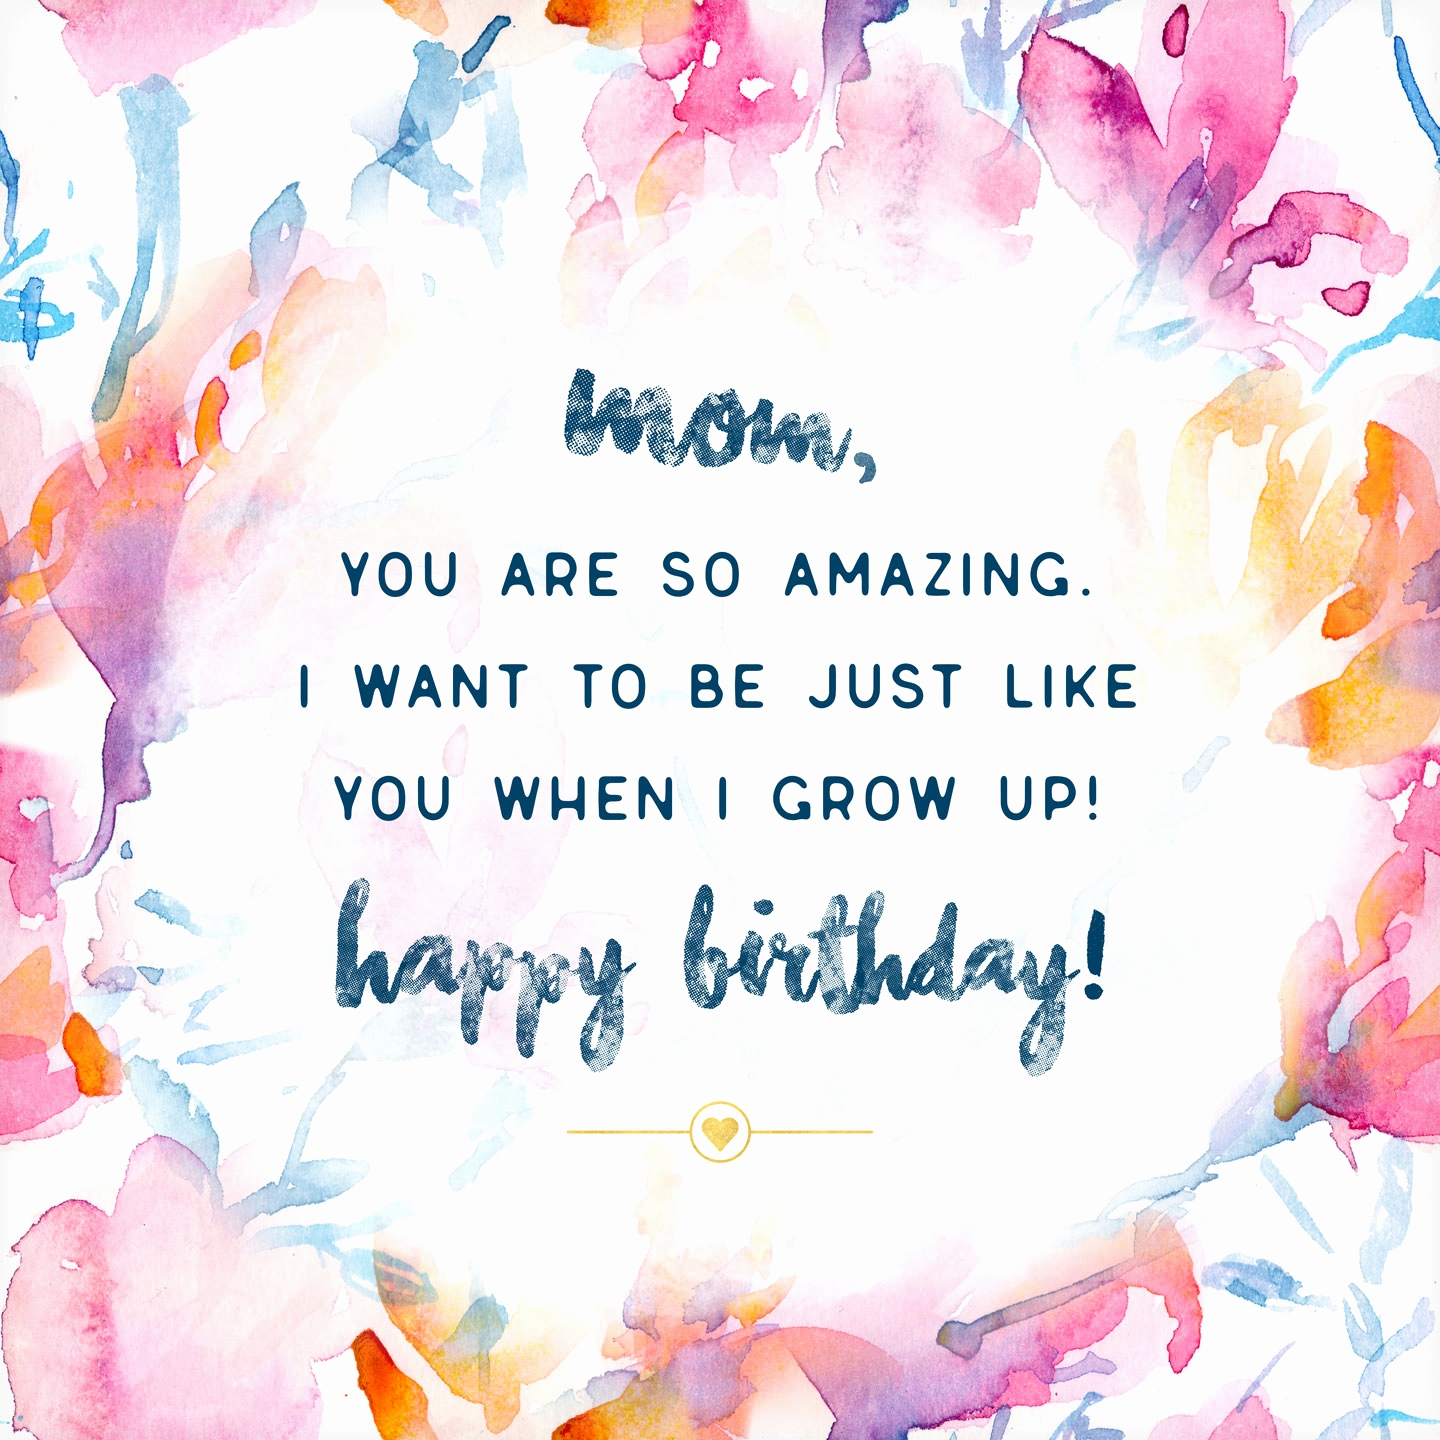 mum birthday card message ; mom-birthday-card-message-luxury-what-to-write-in-a-birthday-card-48-birthday-messages-and-wishes-of-mom-birthday-card-message